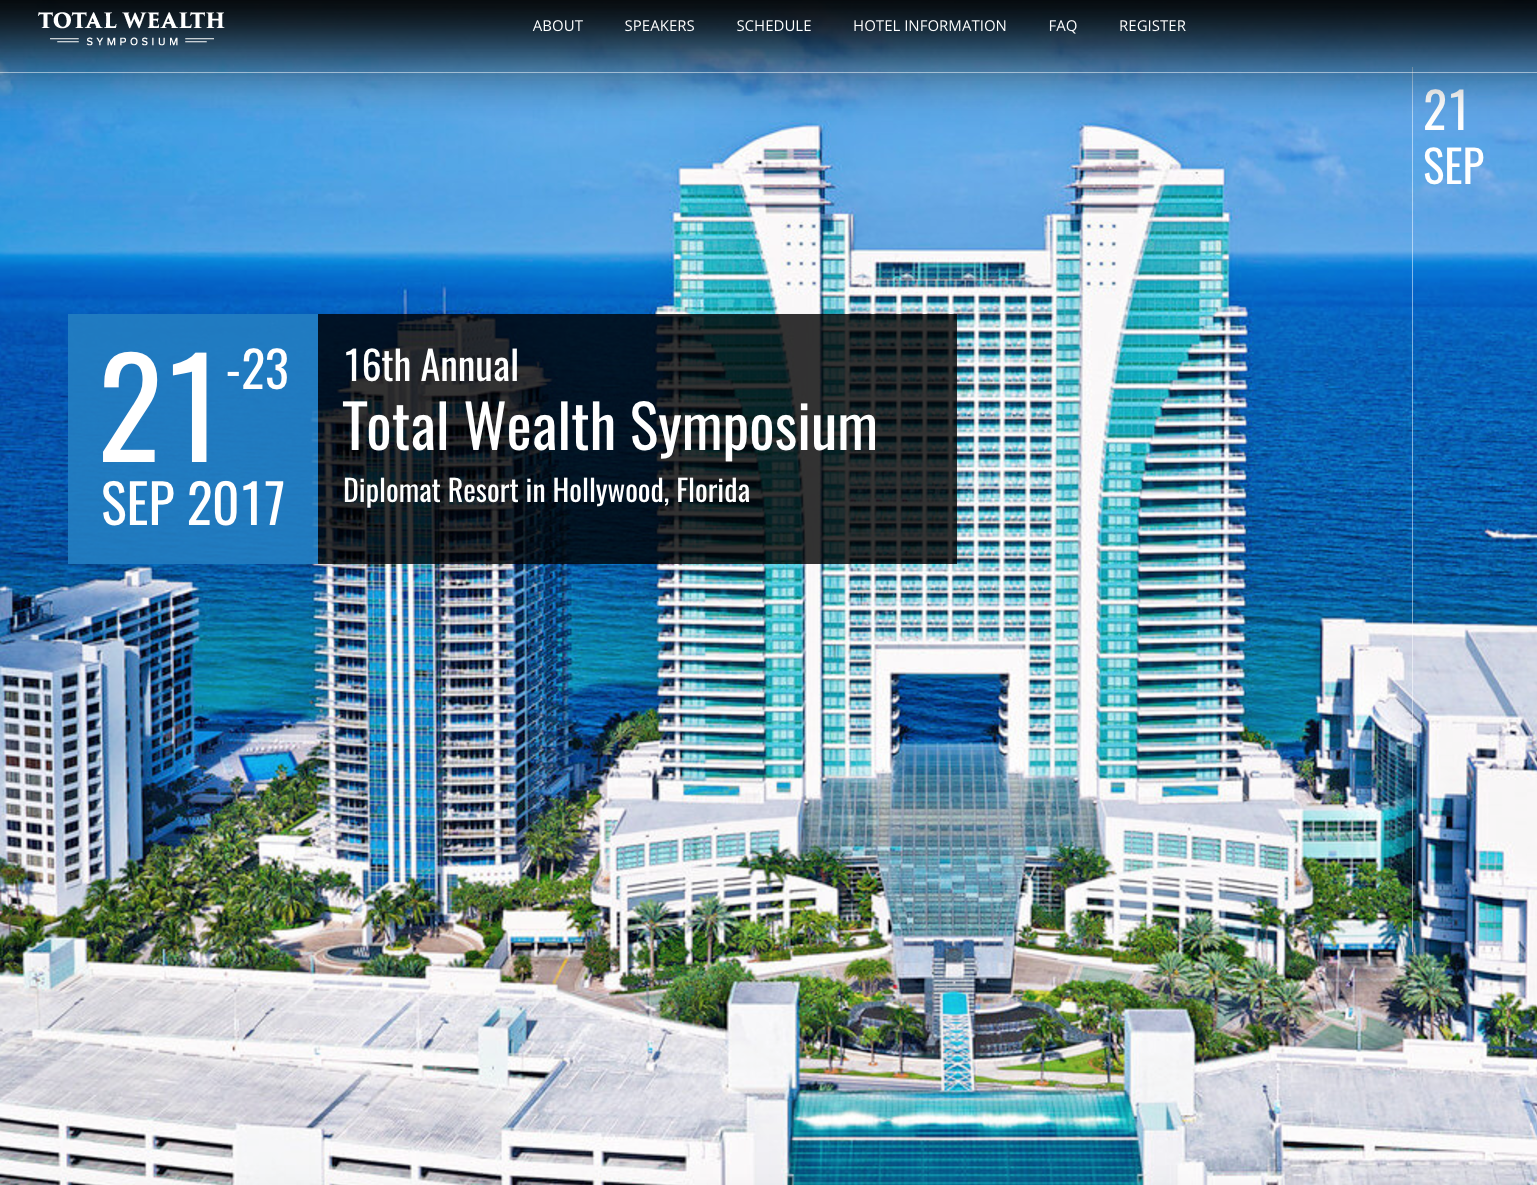 The Total Wealth Symposium 2017